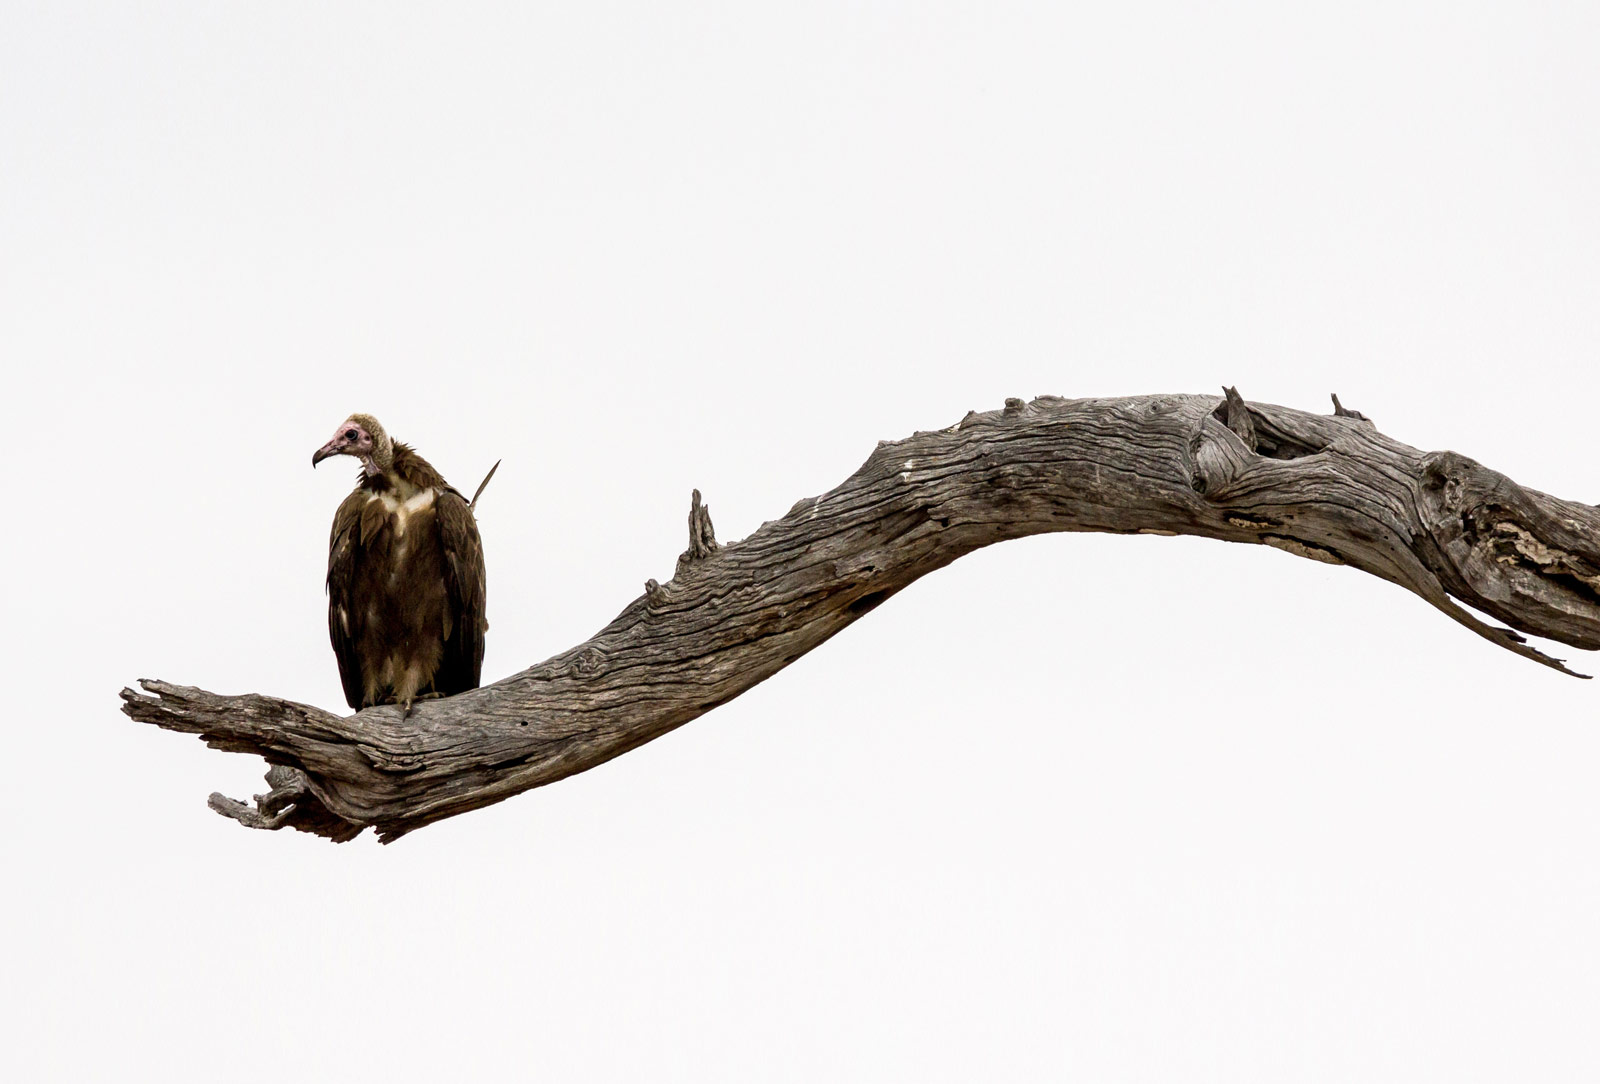 African_Hooded_Vulture__Kruger_National_Park-P.Lindgren44